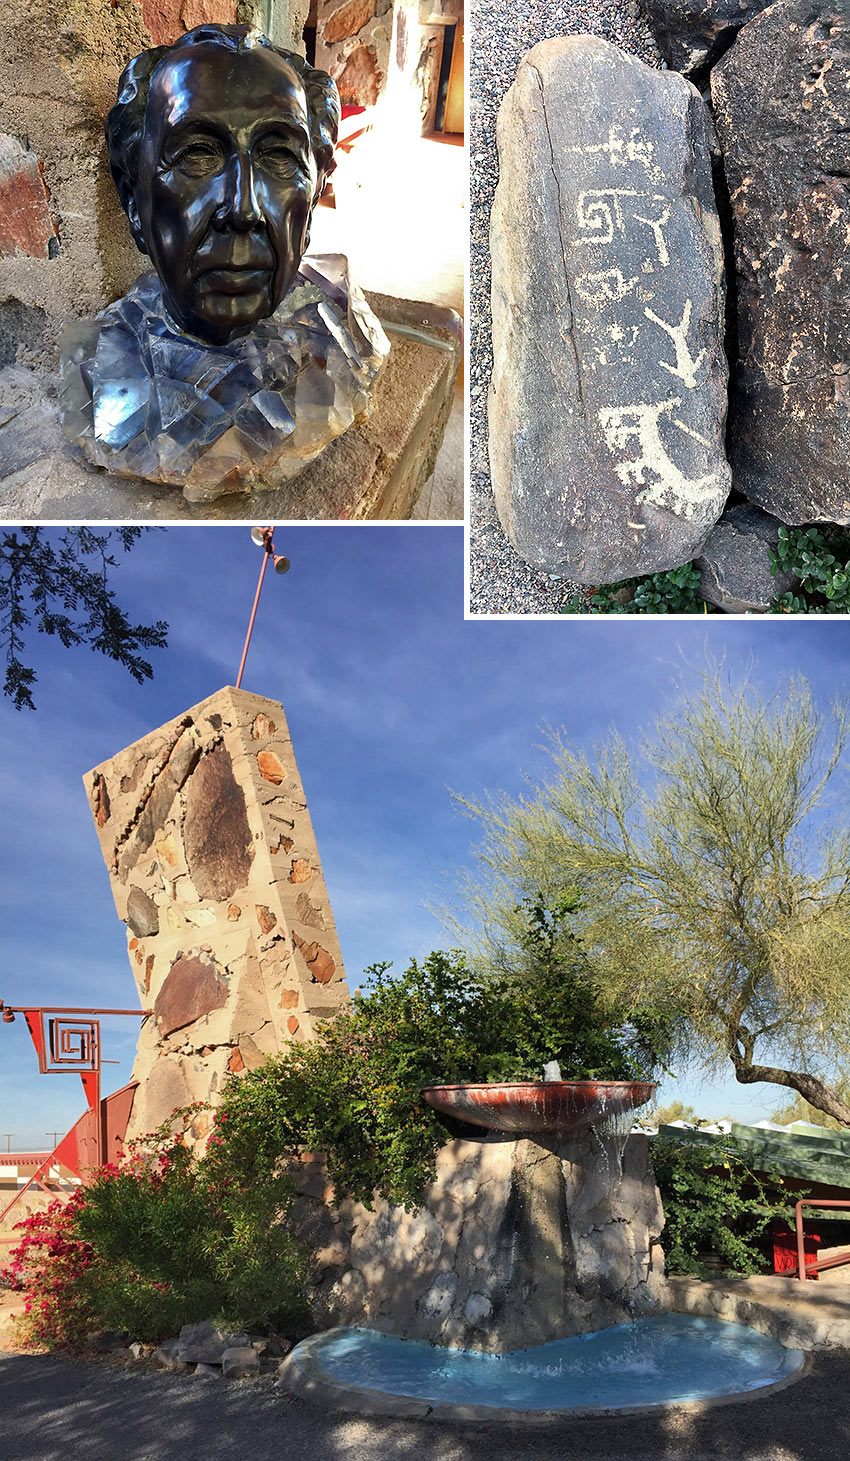 Frank Lloyd Wright's bust, Taliesin West and Petroglyphs